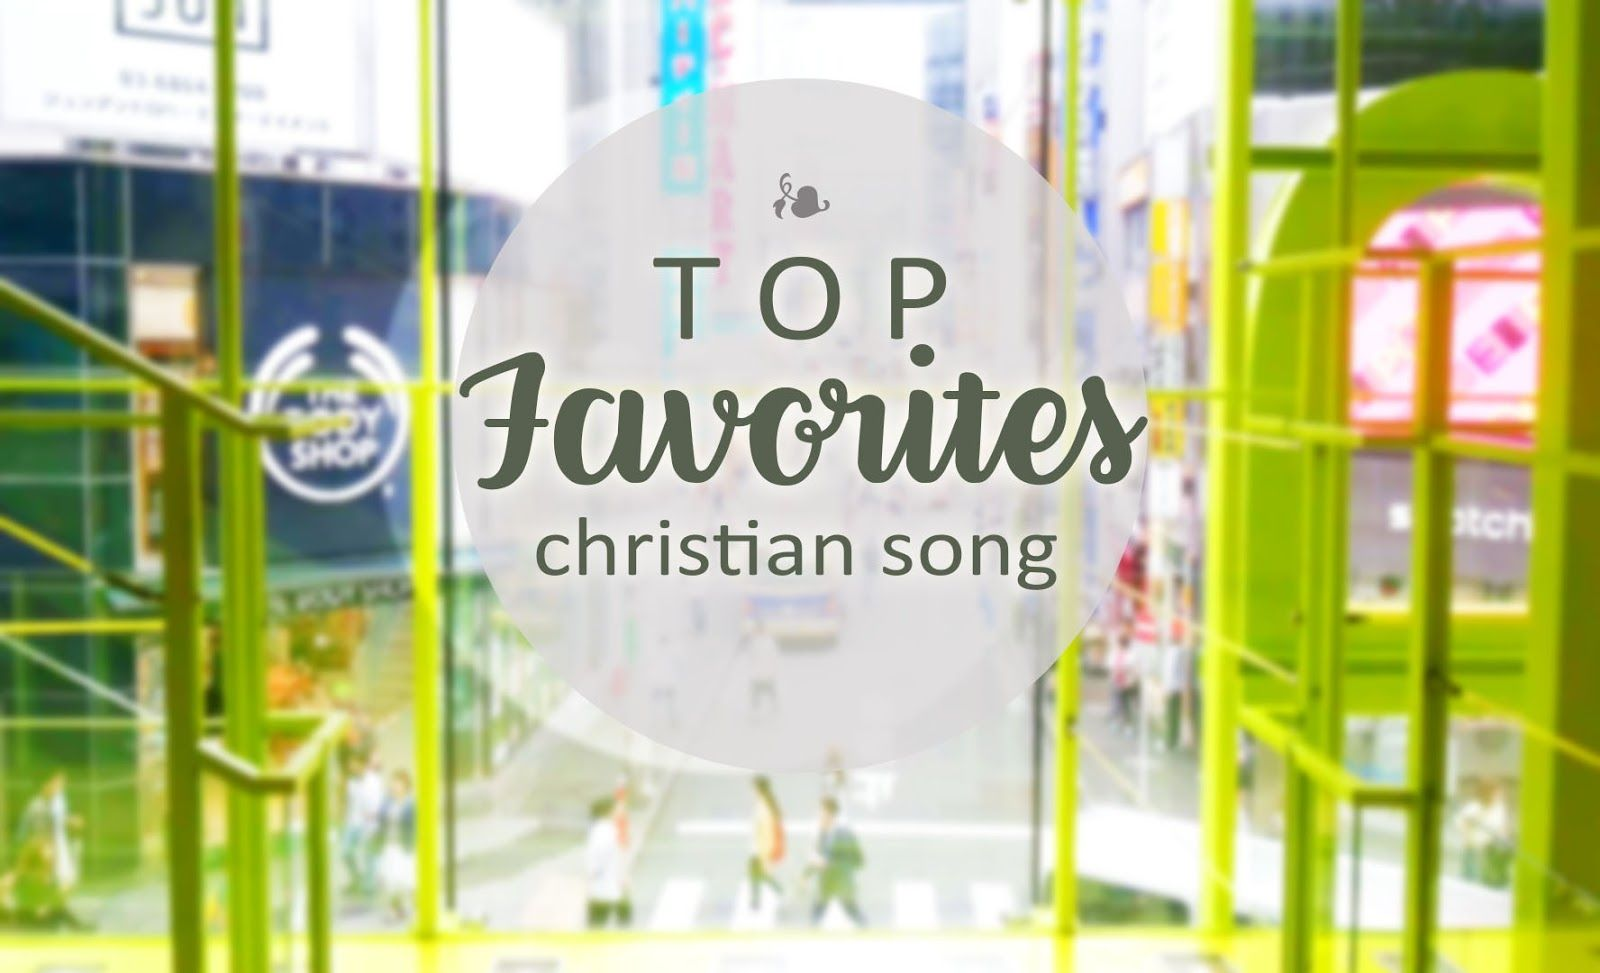 Top ten christian worship songs